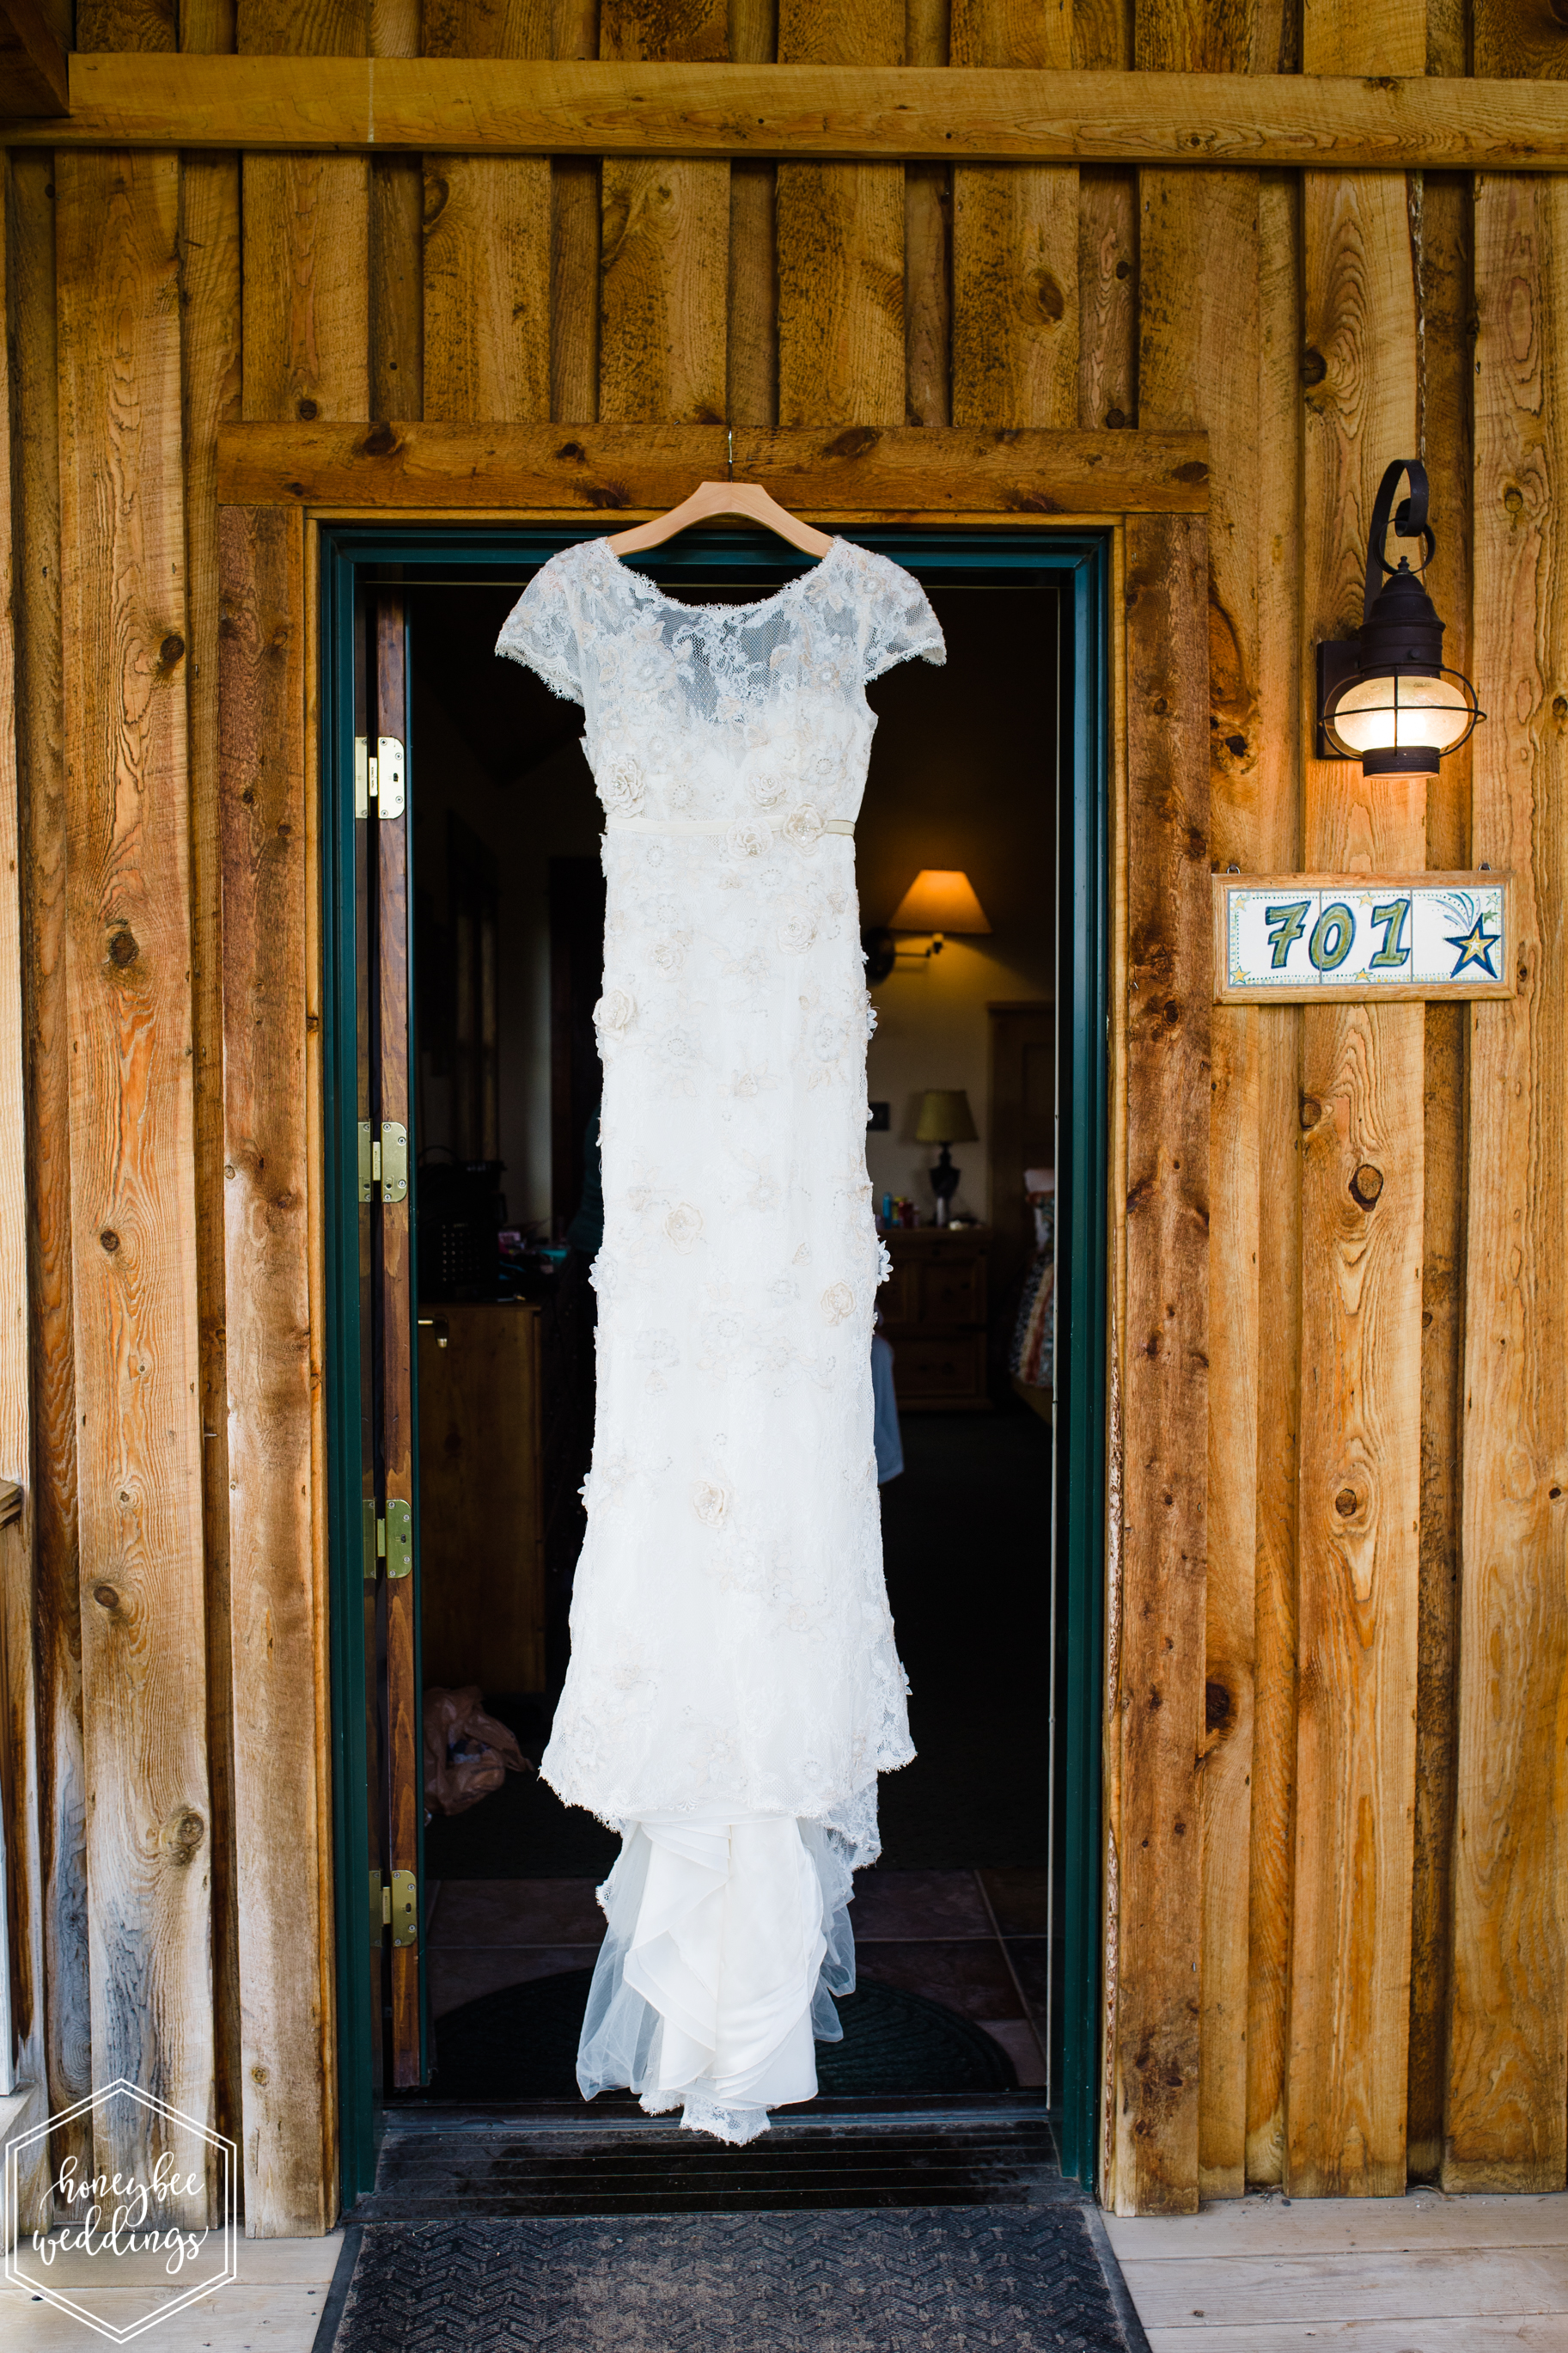 004Montana wedding photographer videographer_Chico hot springs wedding_Honeybee Weddings_Claudia & Bill_June 03, 2019-31.jpg